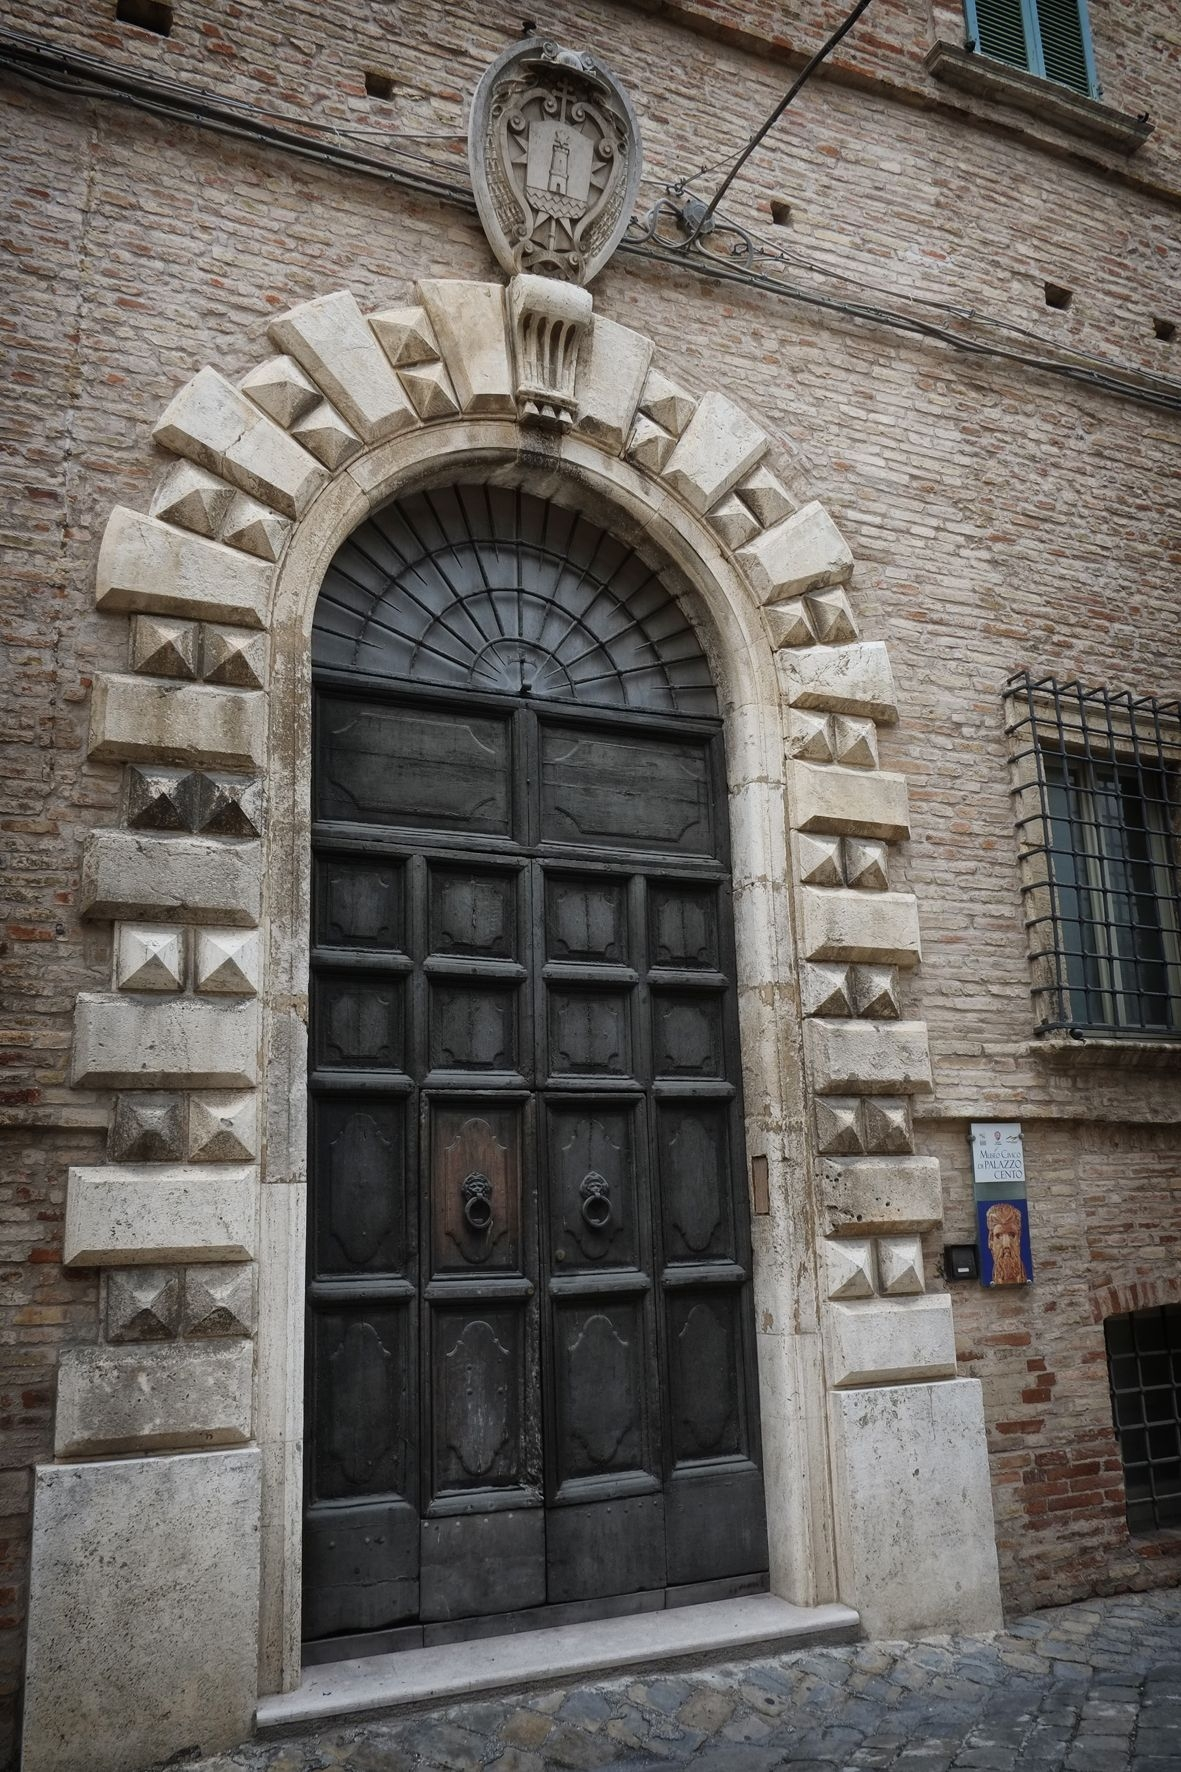 Civic Museum of Palazzo Cento of Pollenza